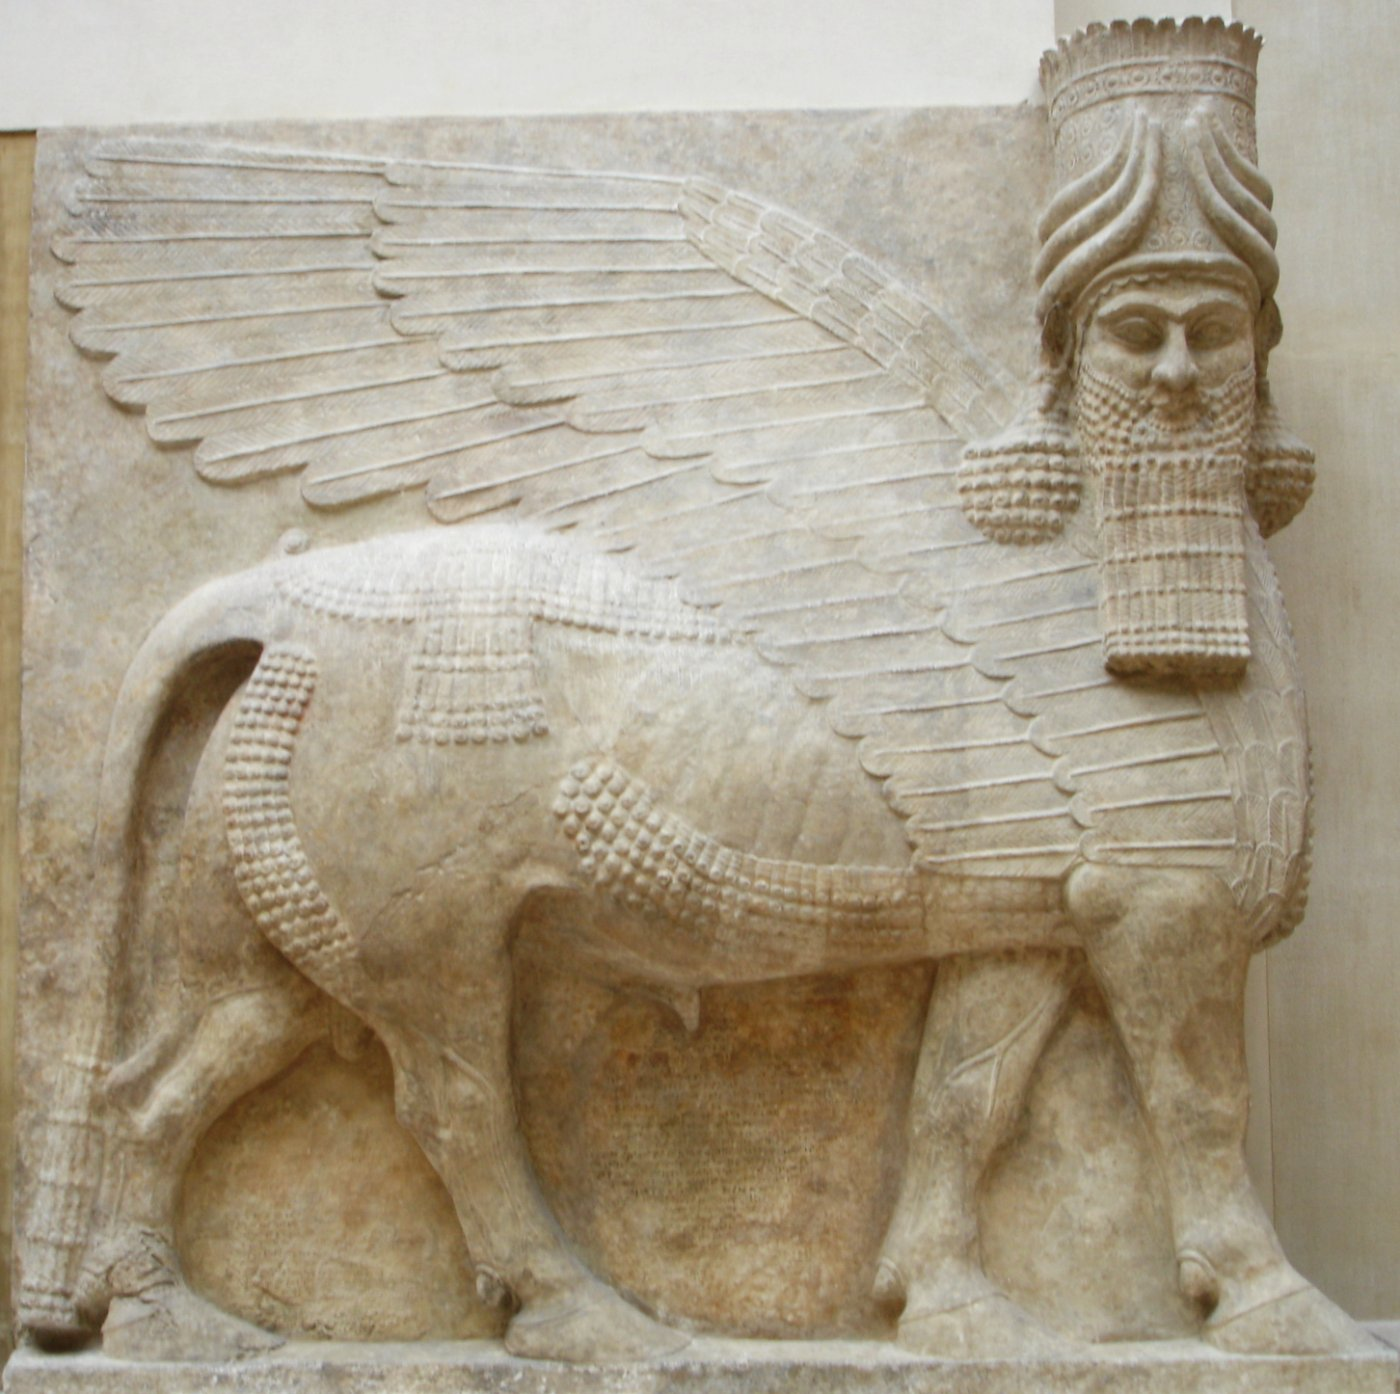 https://media.thisisgallery.com/wp-content/uploads/2018/12/Mesopotamian-art.jpg